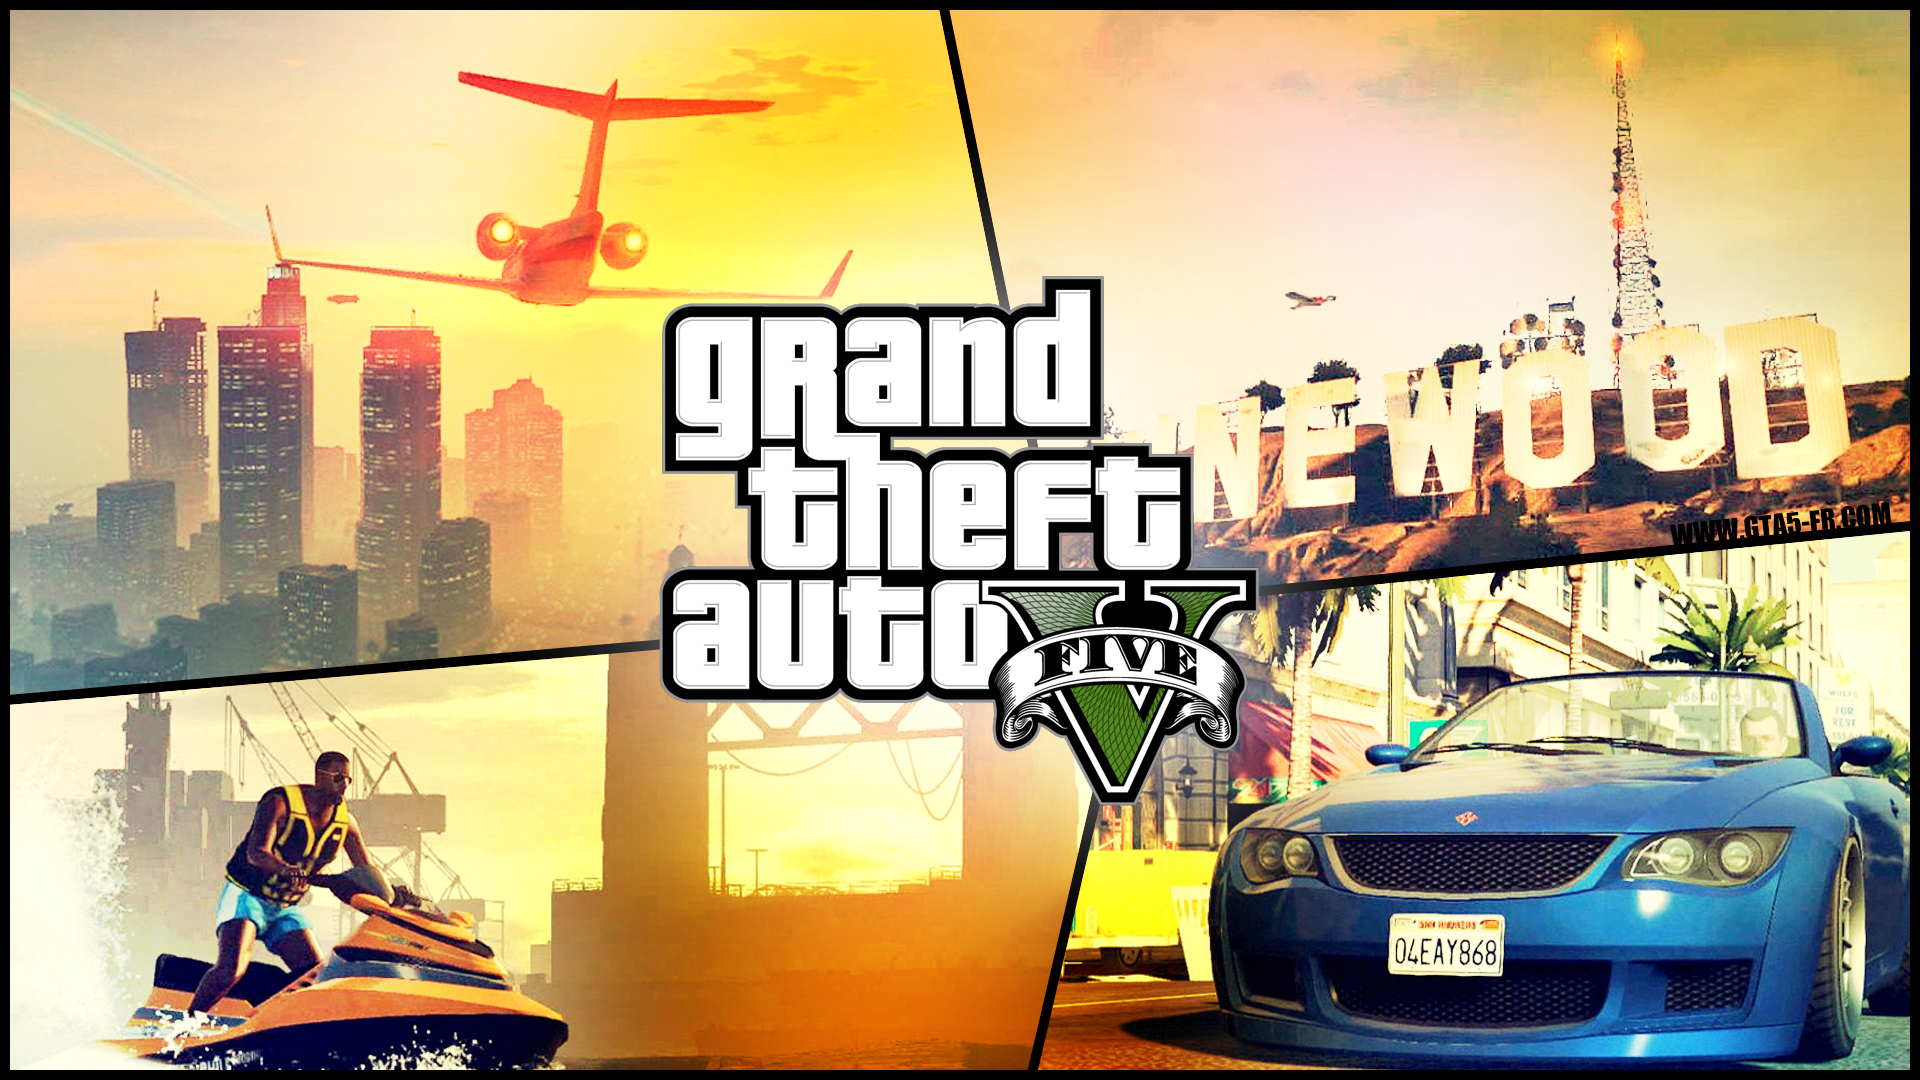 GTA 5 Apk No Survey for Android Download [Fully Working Links]